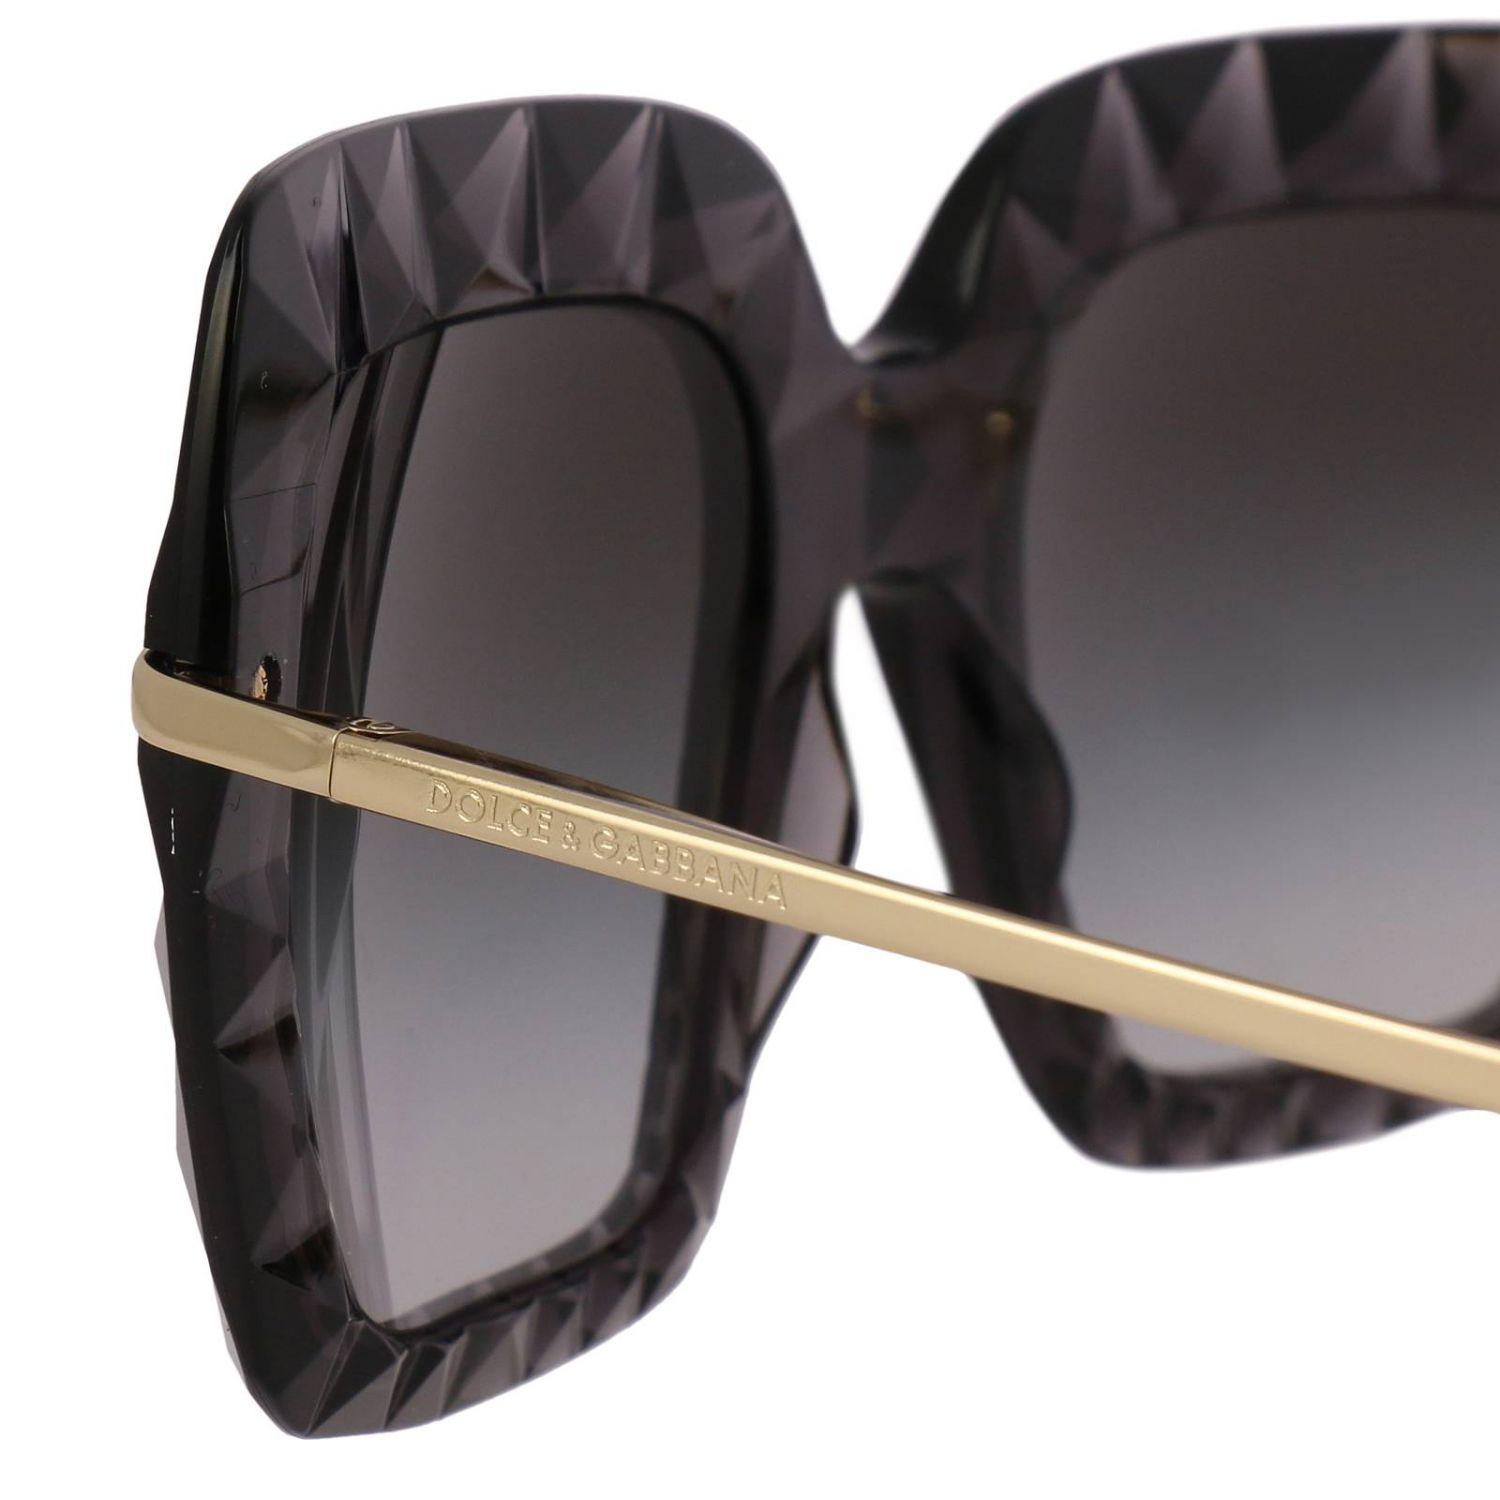 Dolce & Gabbana Sunglasses Women in Black